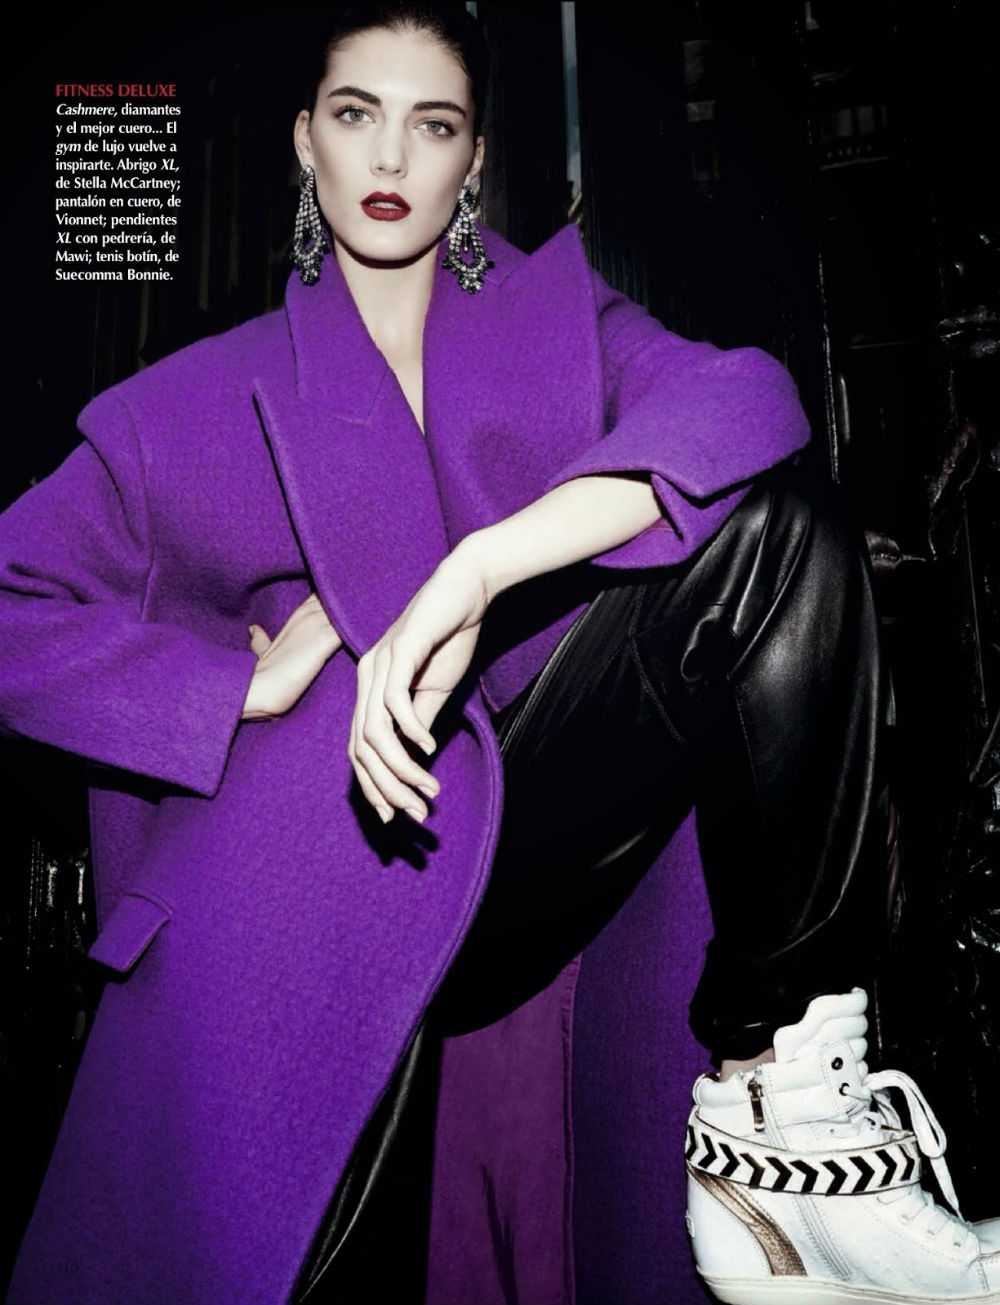 katryn-kruger-by-alessio-bolzoni-for-vogue-mexico-january-2014-5.jpg